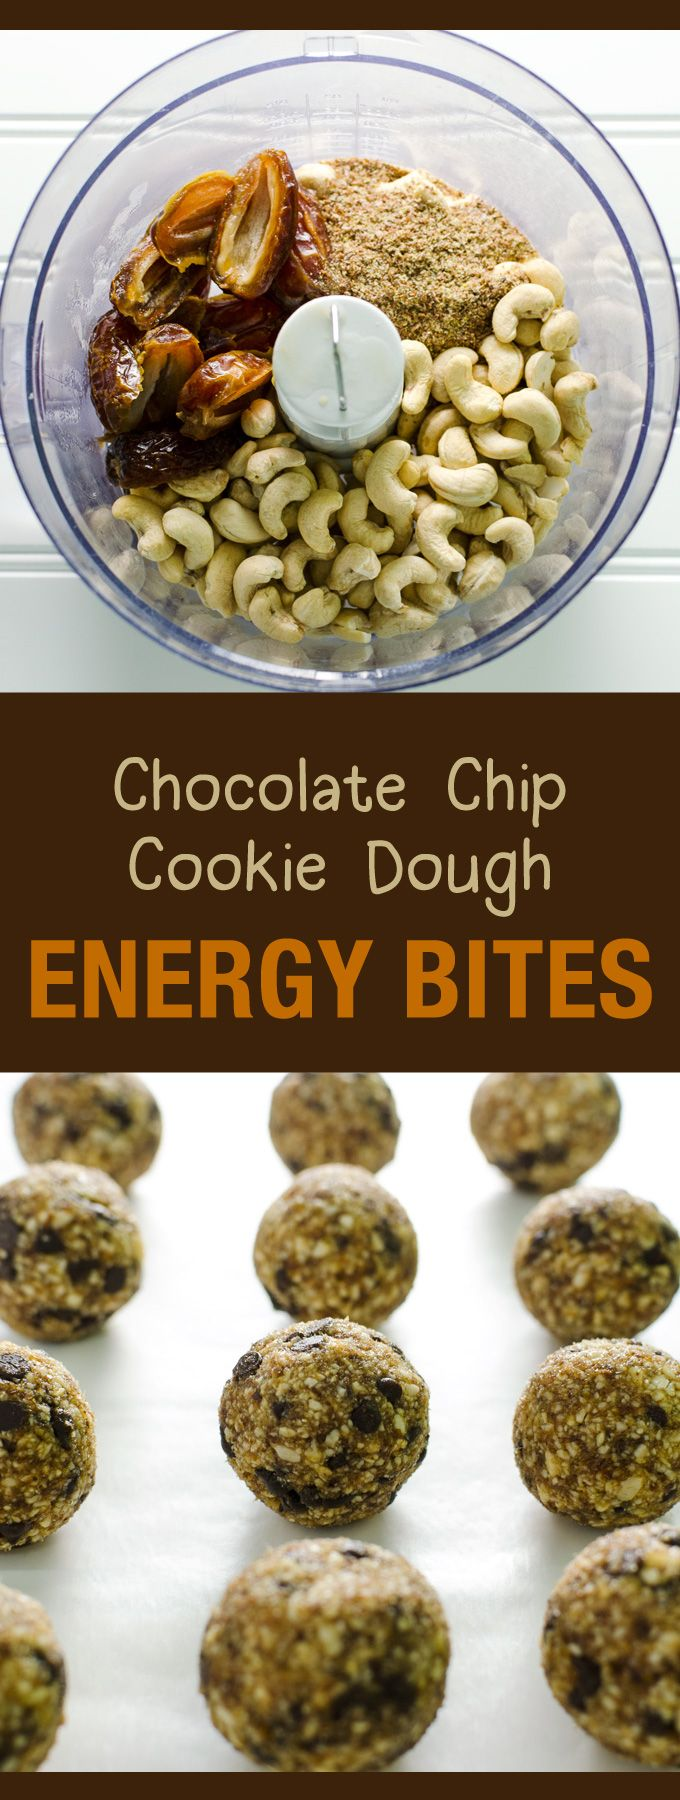 Chocolate Chip Cookie Dough Energy Bites - a healthy snack or dessert - easy recipe - vegan and gluten free | VeggiePrimer.com